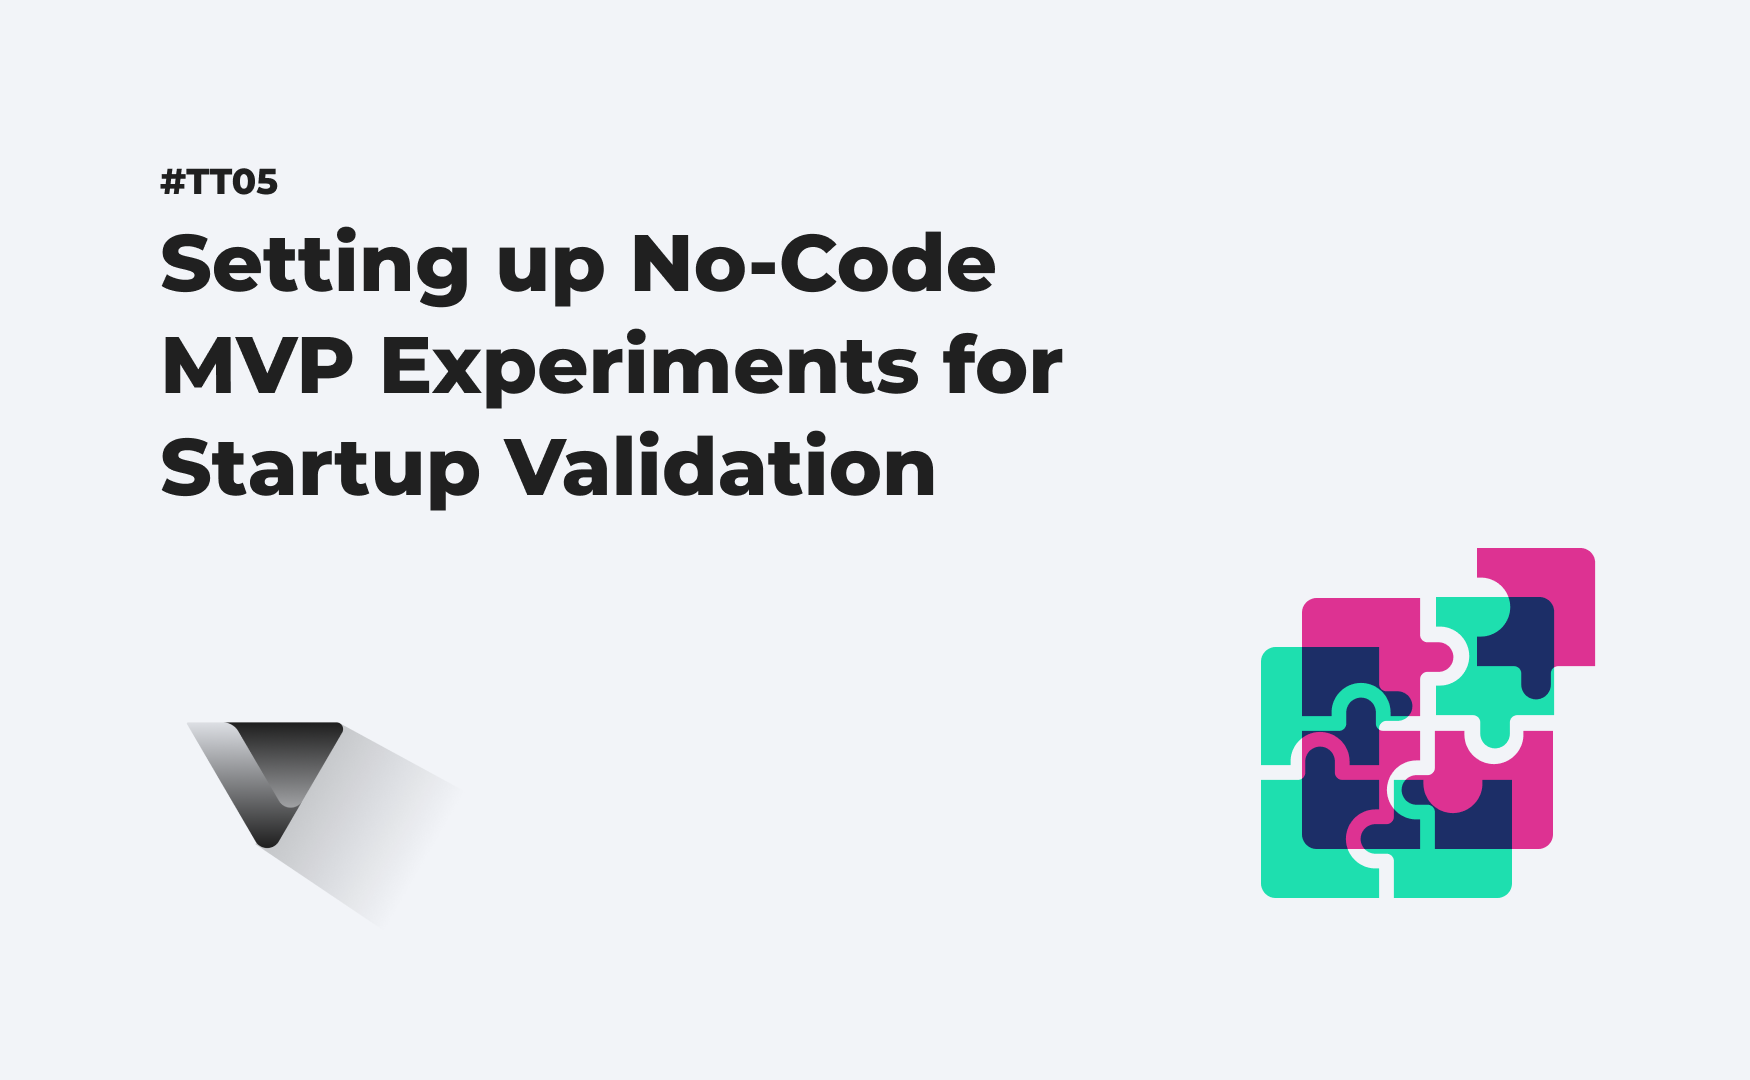 Setting up No-Code MVP Experiments for Startup Validation (#TT05).